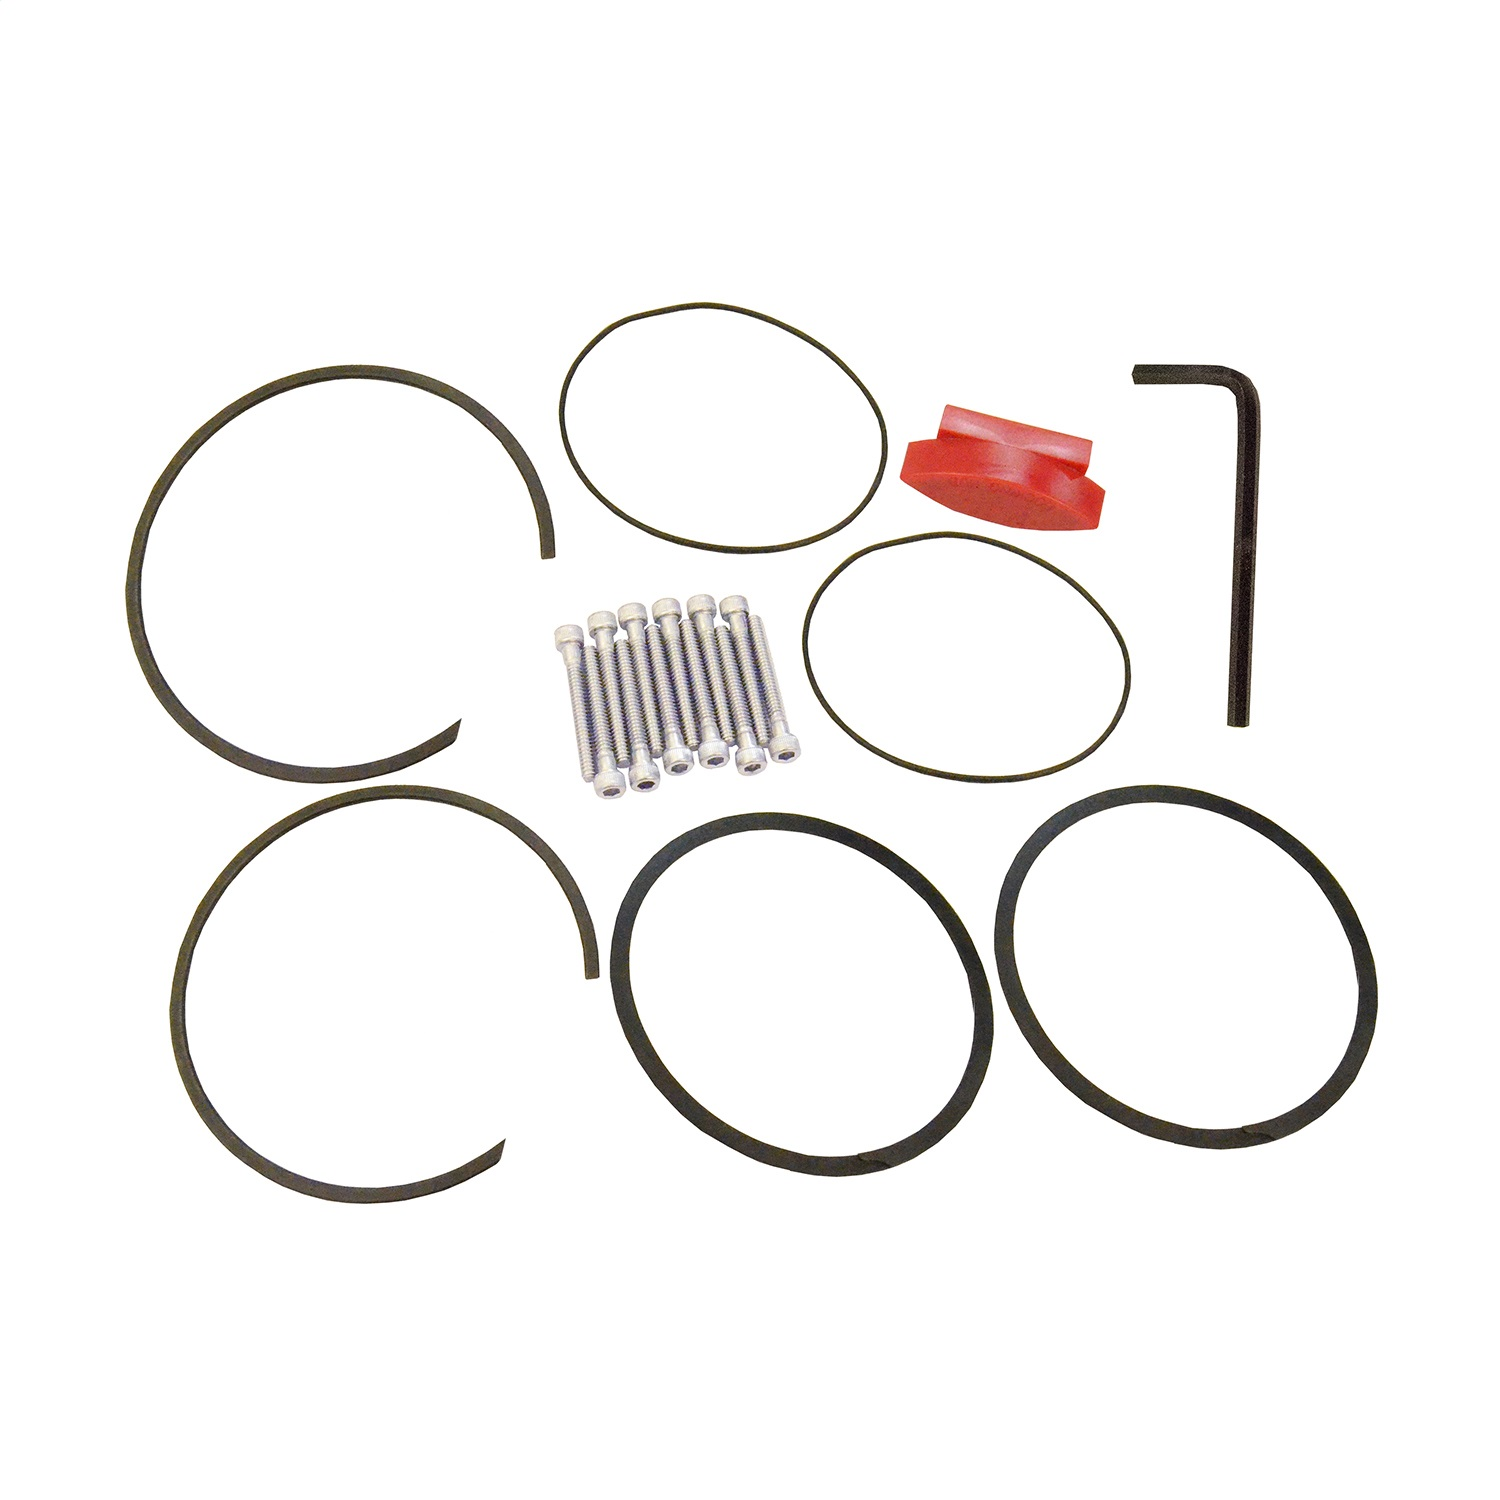 Mile Marker Locking Hub Service Kit